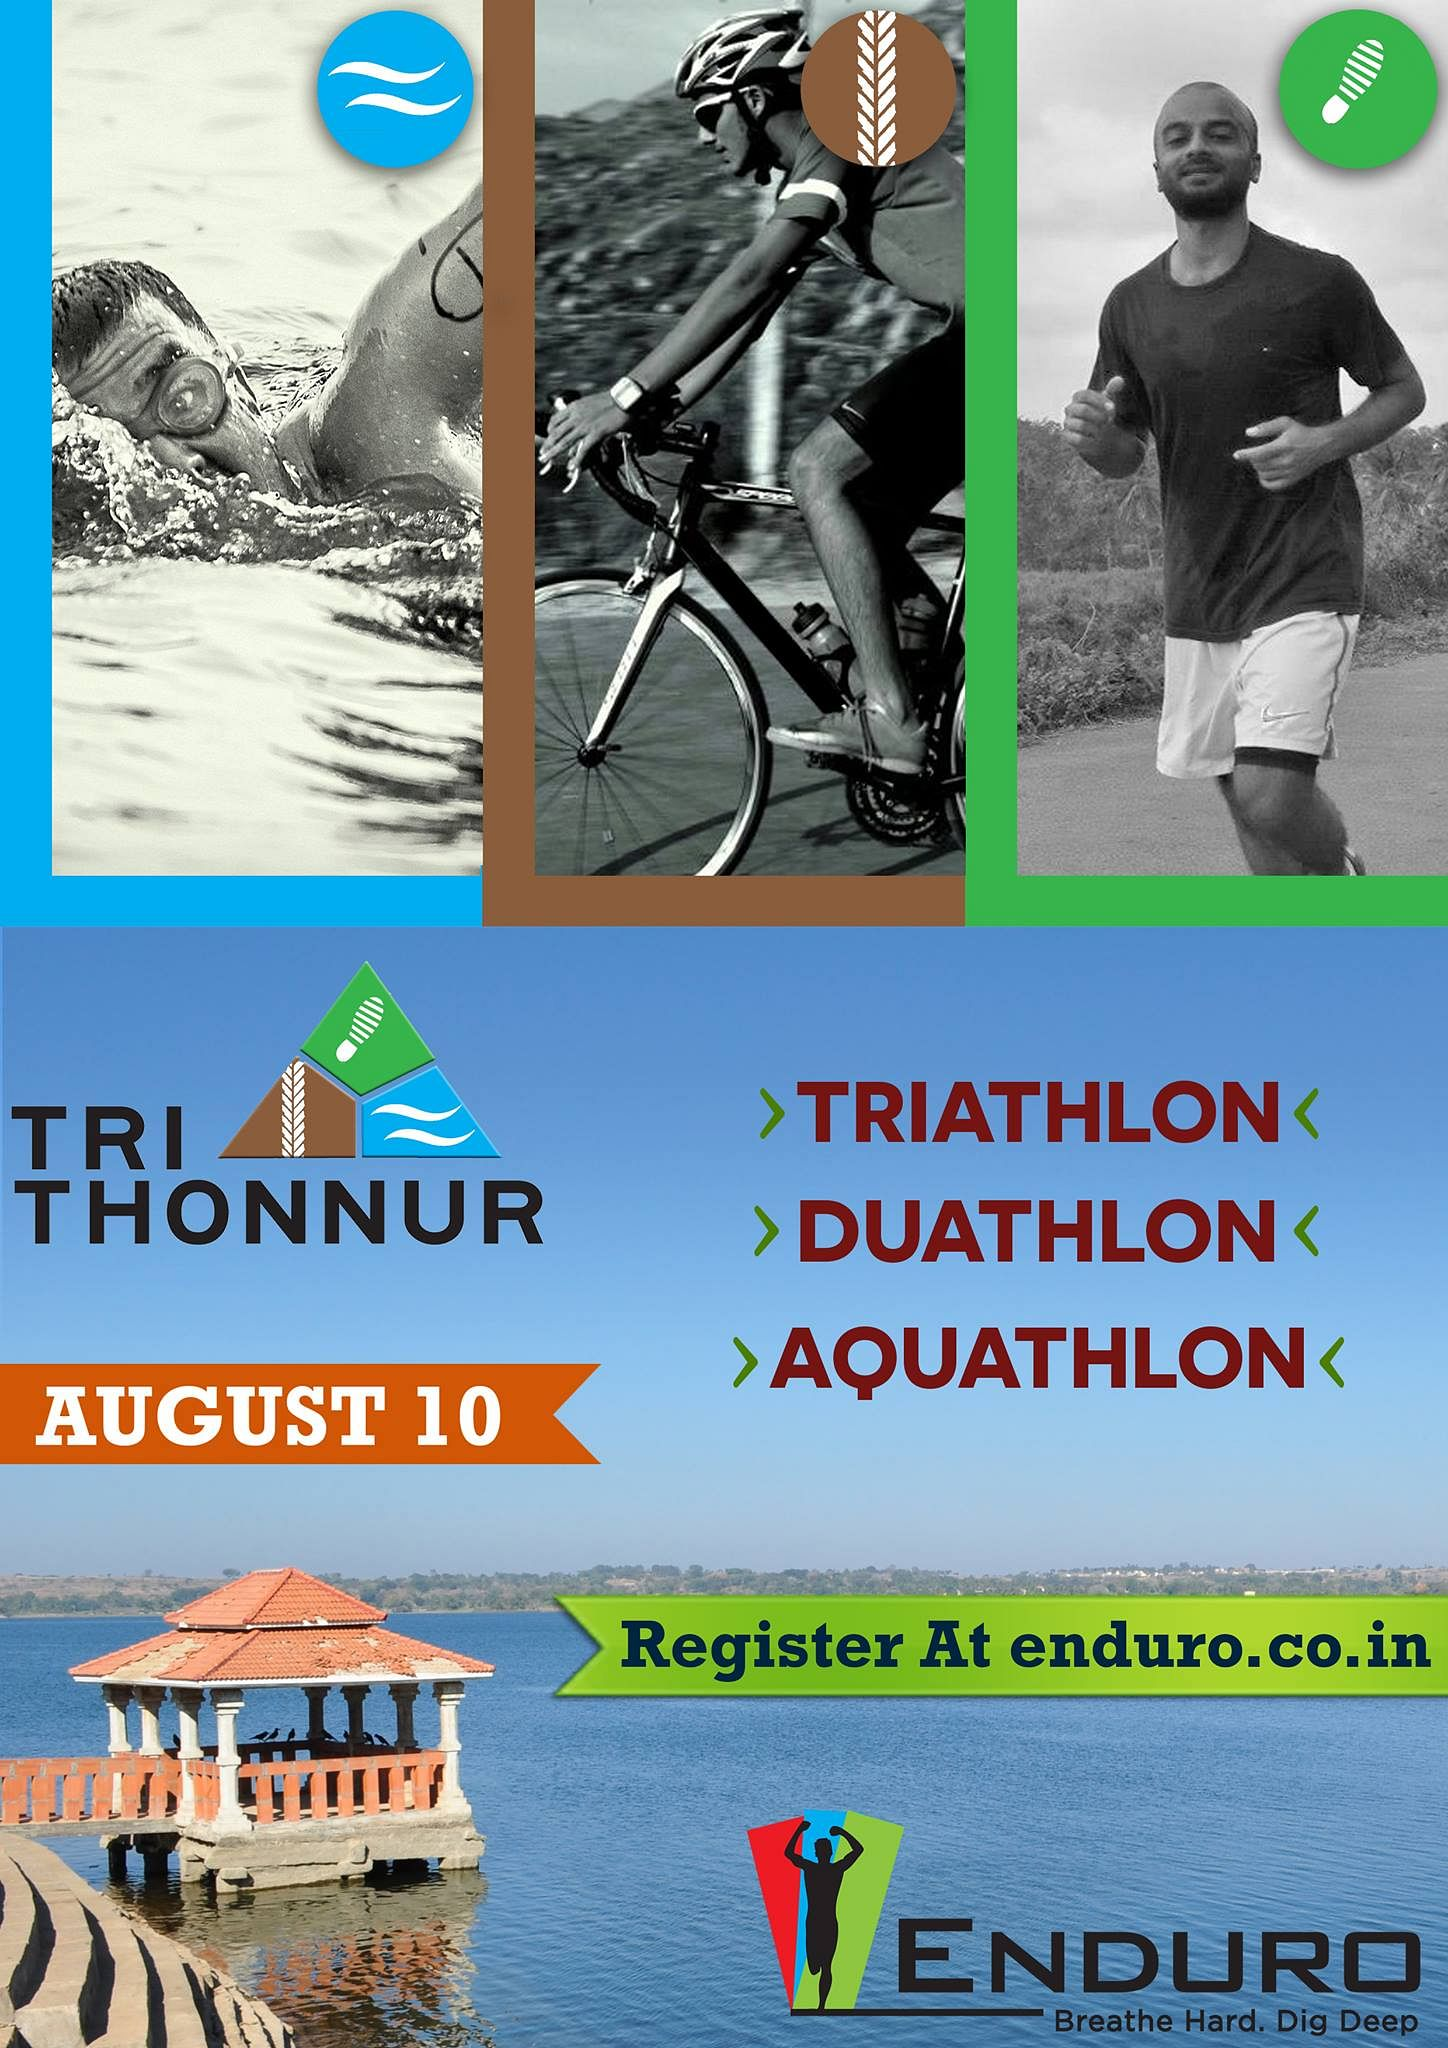 Tri Thonnur 2014, one of India's biggest triathlon events, returns with new introductions